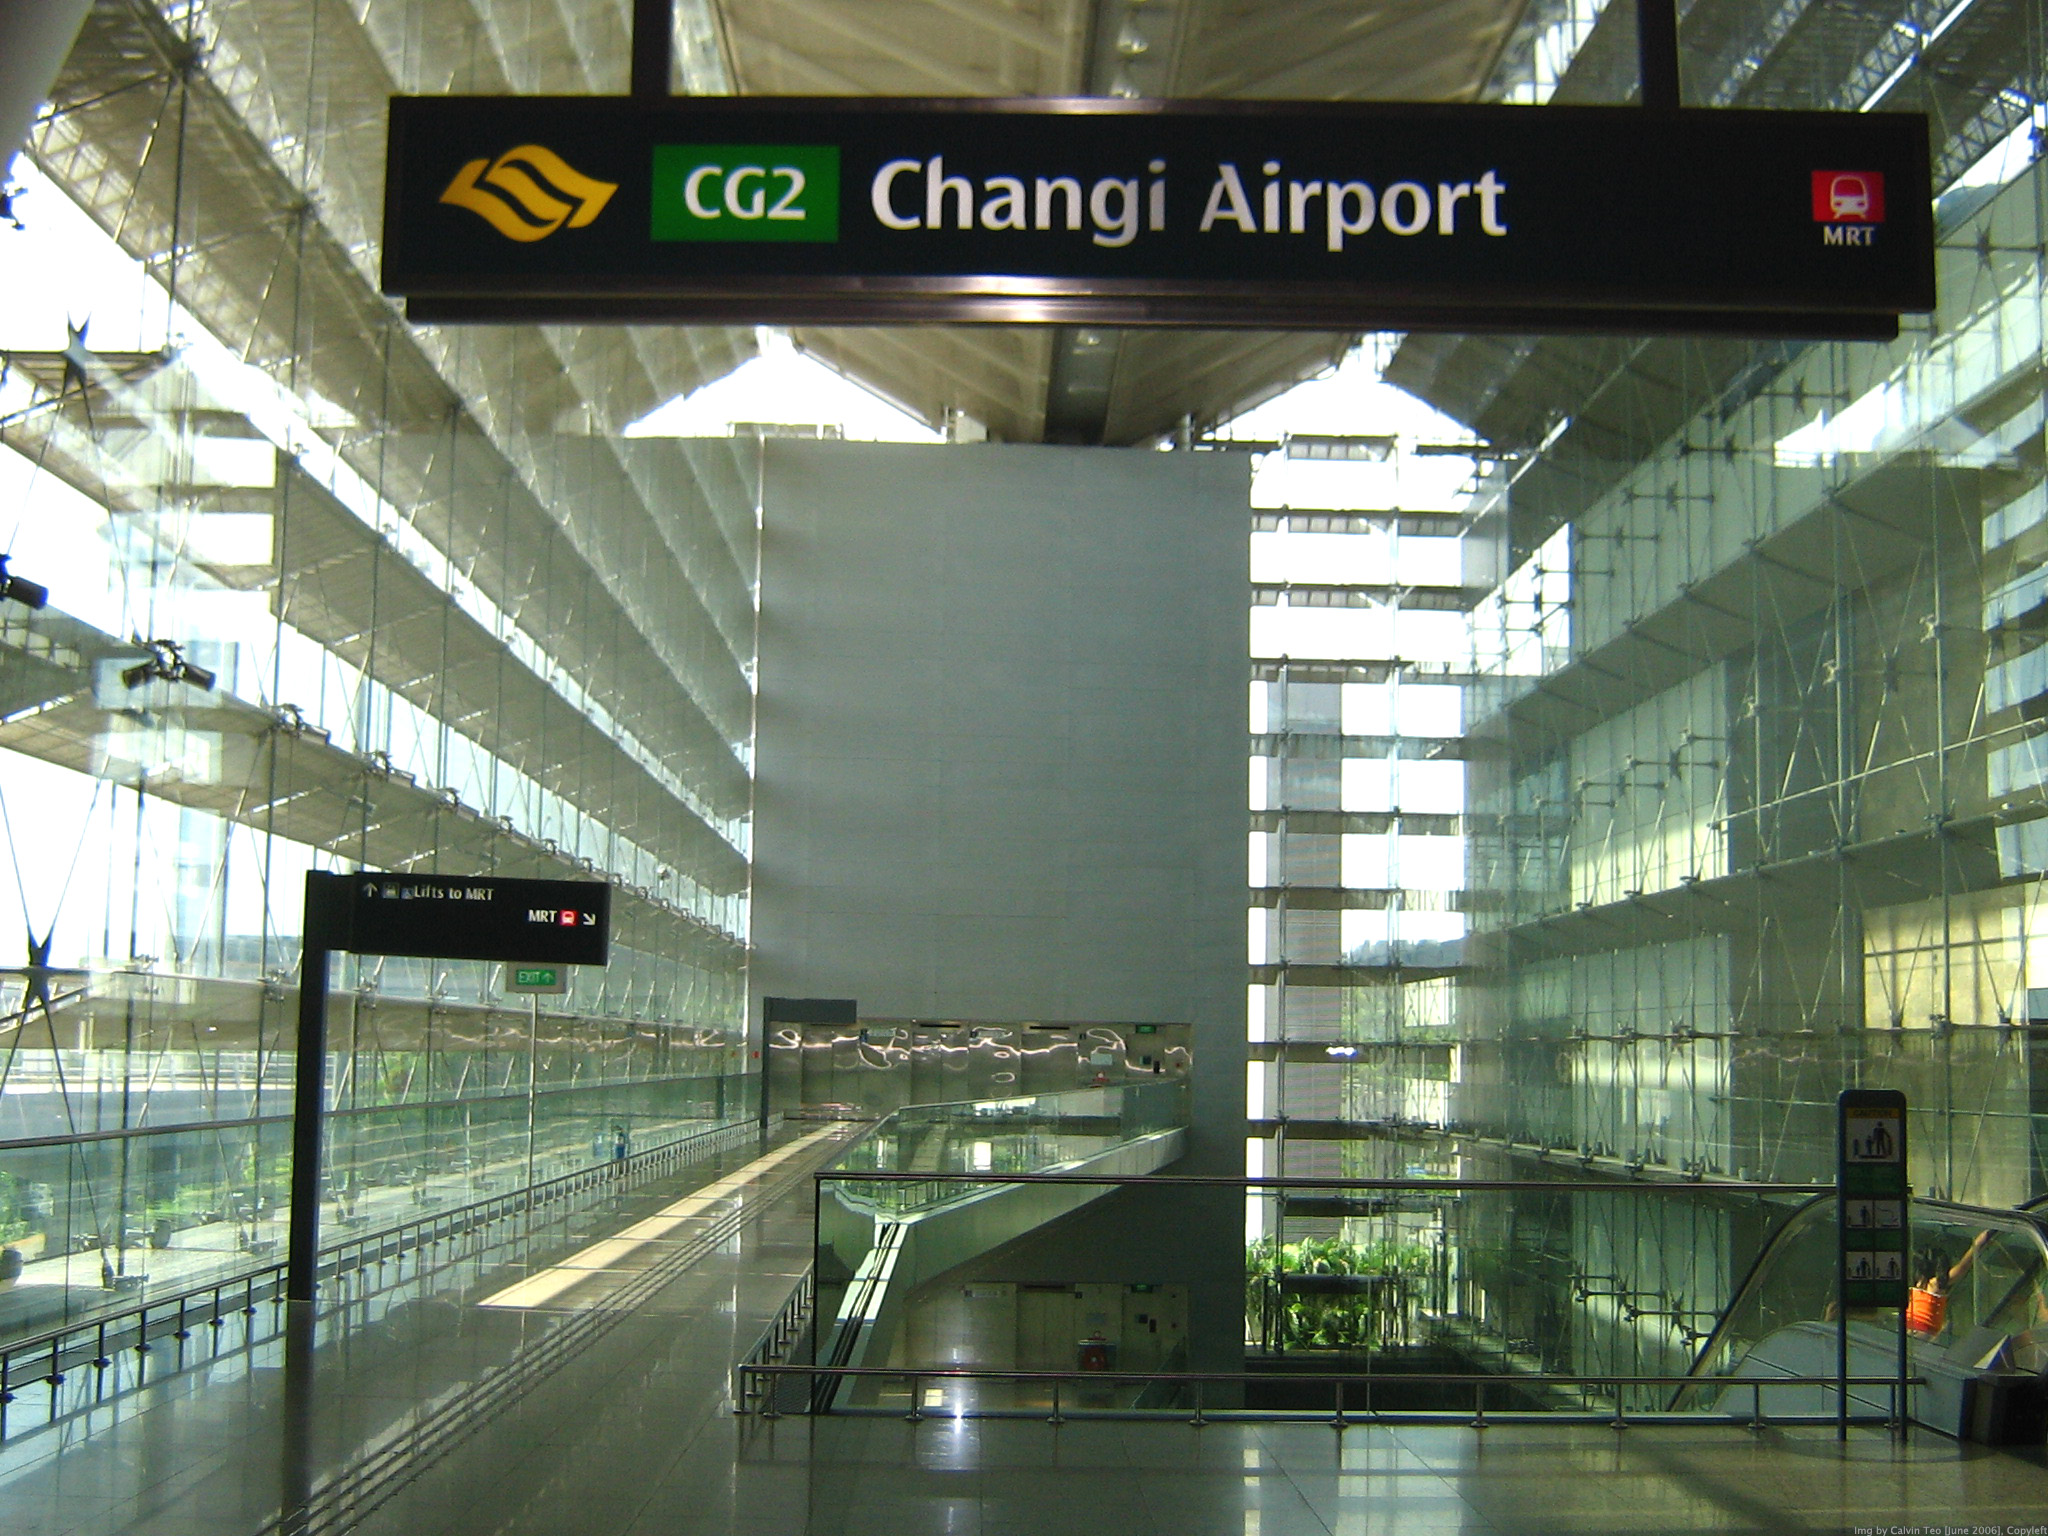 Changi Airport entrance.